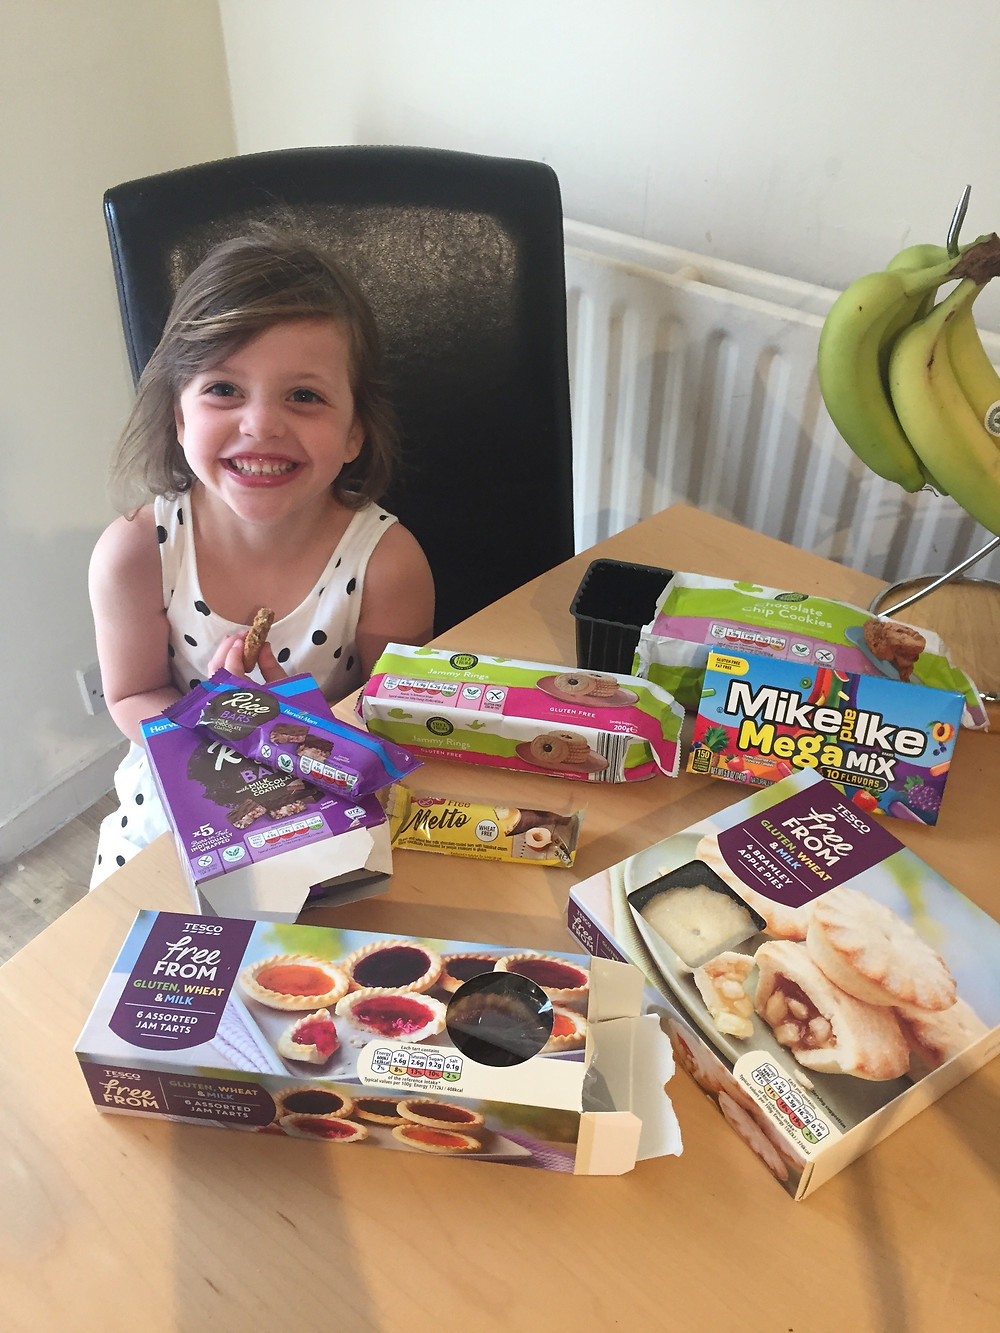 Your child can find gluten-free food they'll love!